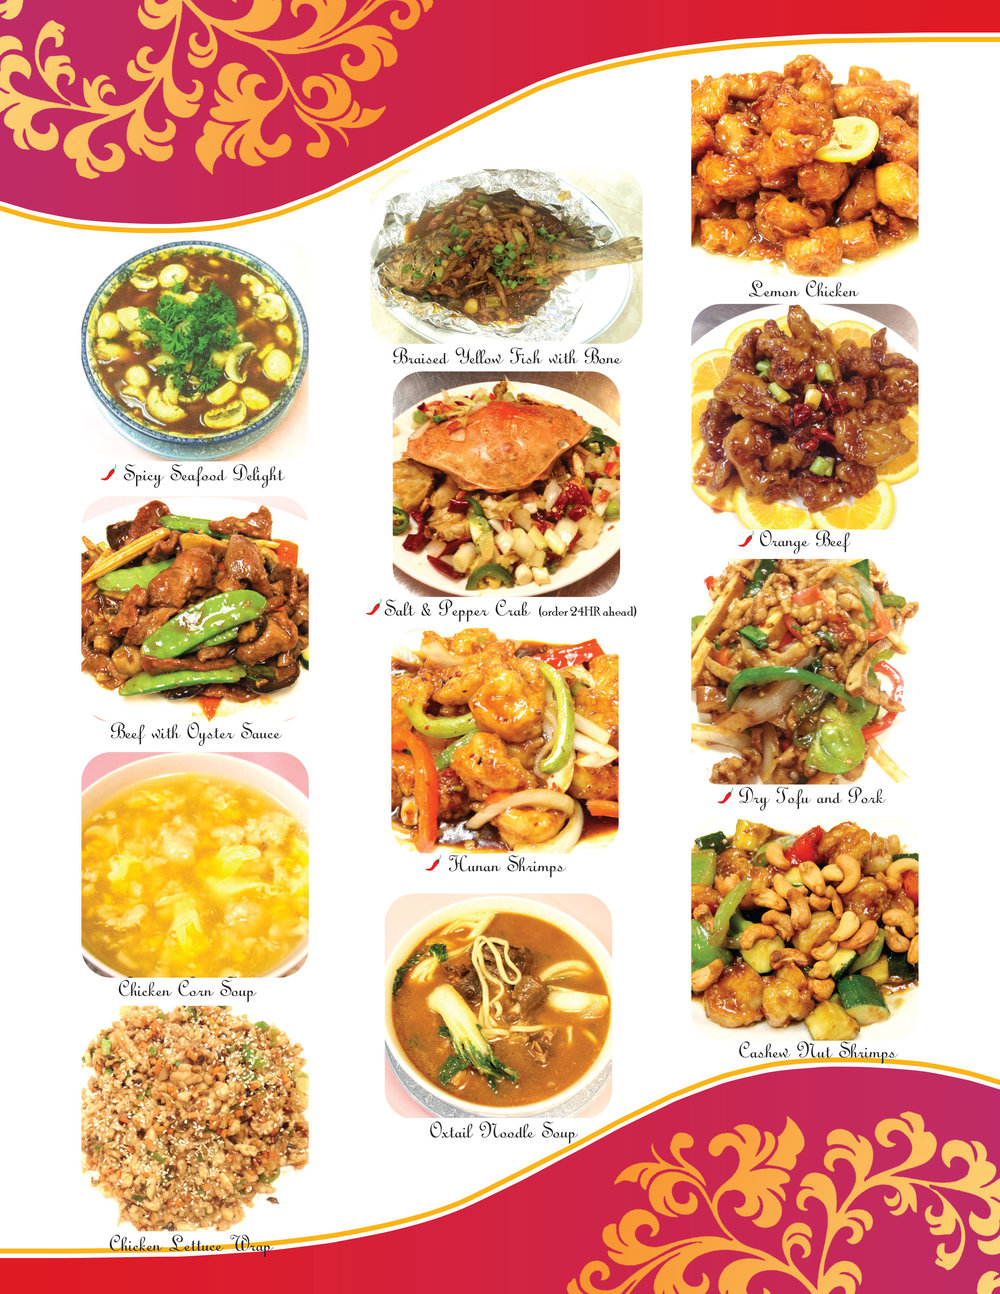 English menu book 7-3.jpg